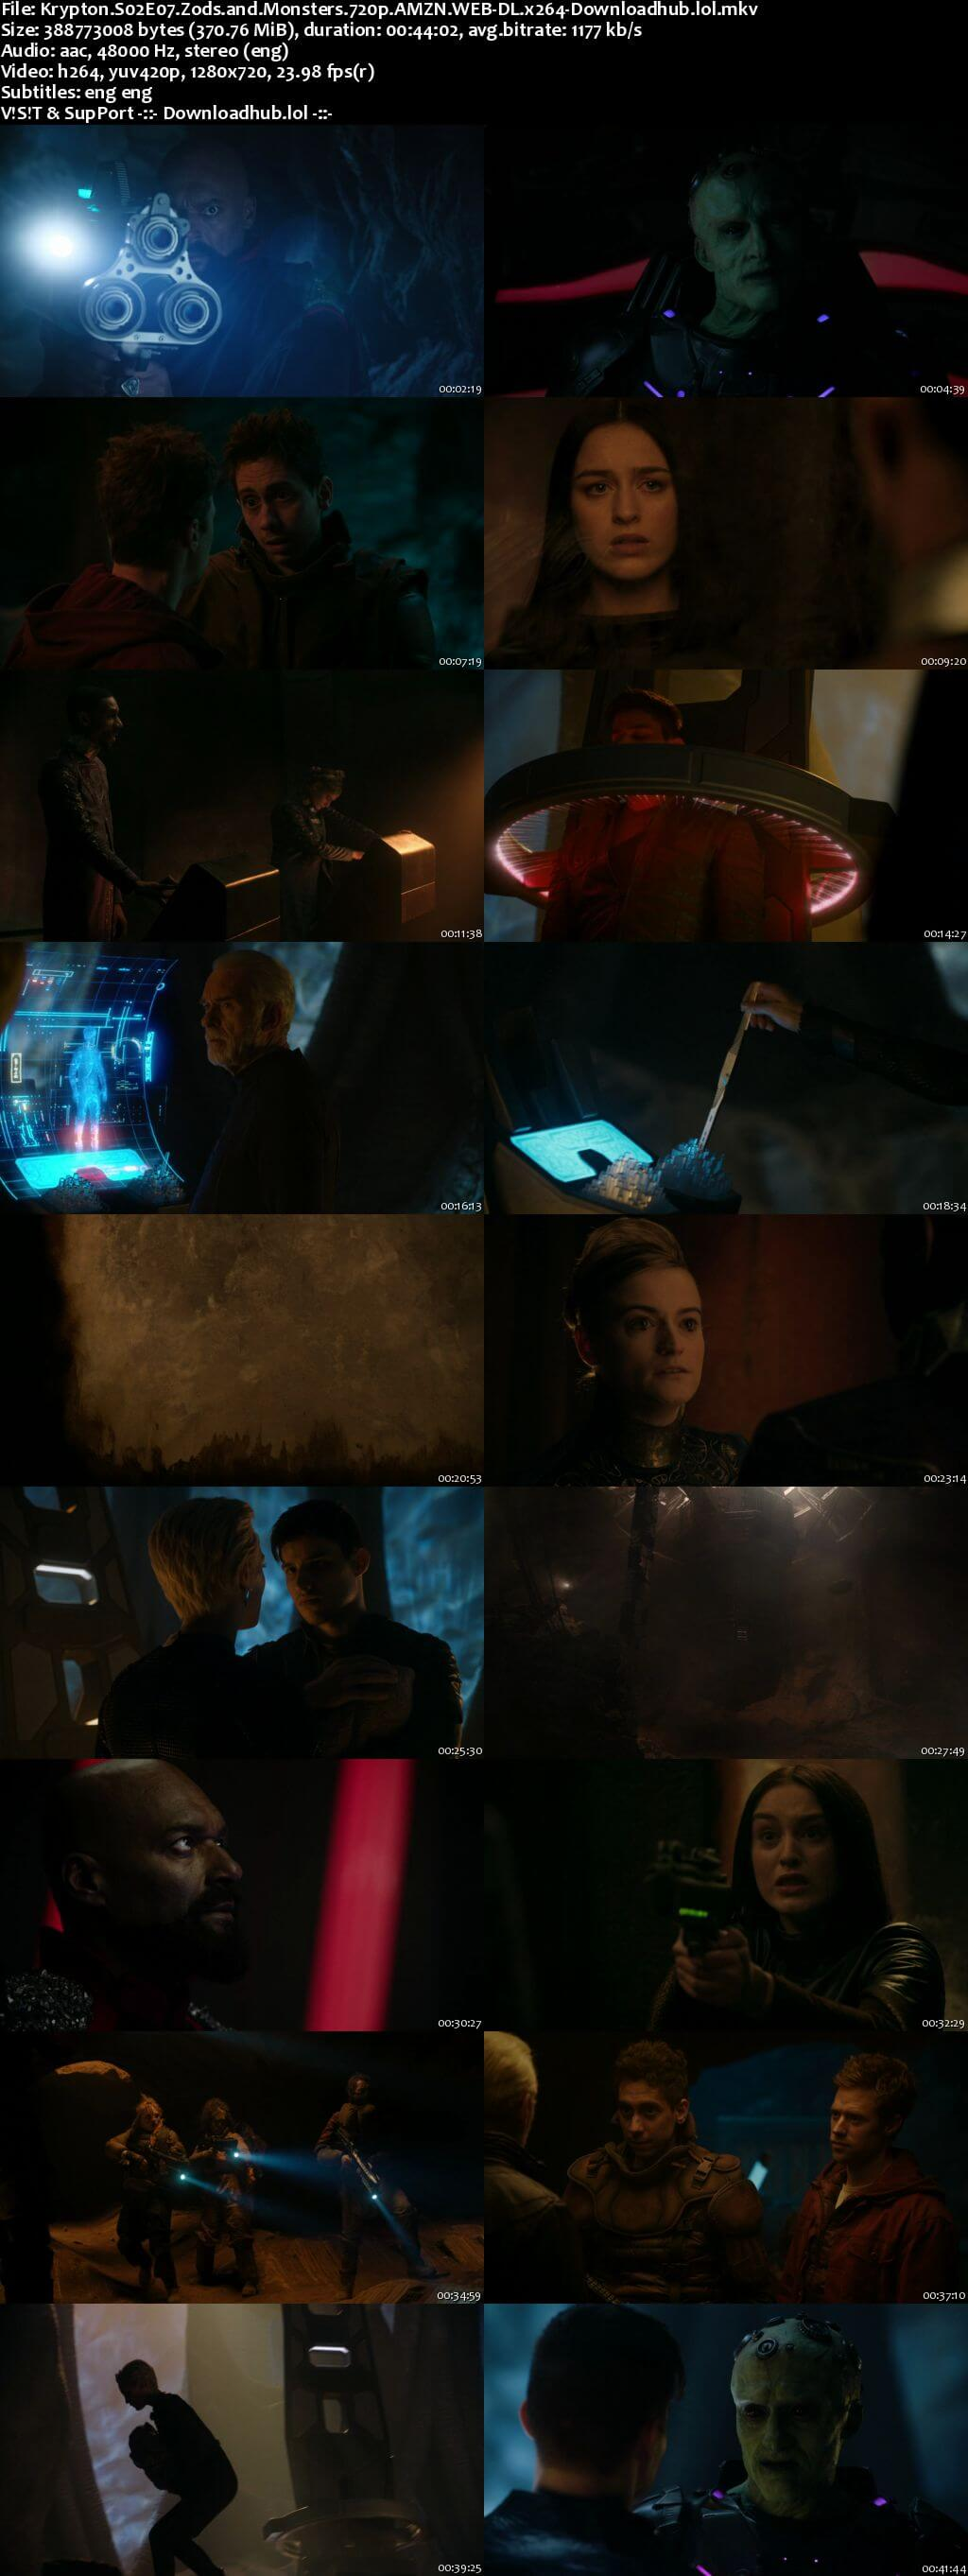 Krypton S02E07 350MB AMZN WEB-DL 720p ESubs